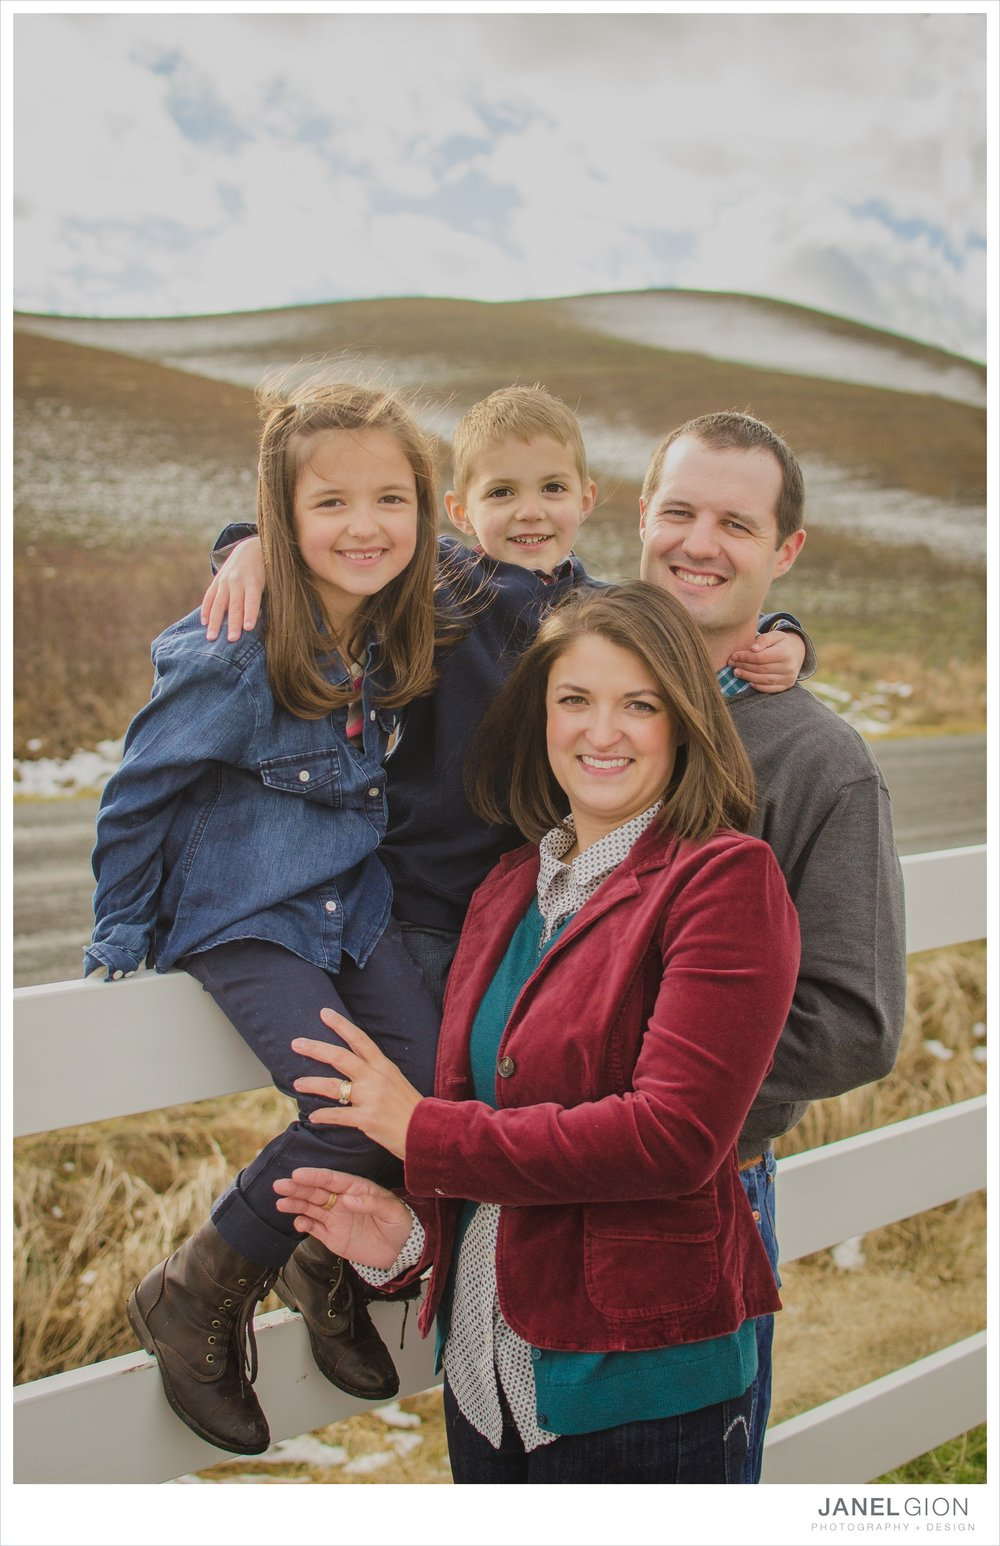 North-Idaho-Family-Children-Photographer-Year-in-Review-Contest-2013-Lifestyle-Family-Portraits-by-Janel-Gion-Photography_0057.jpg